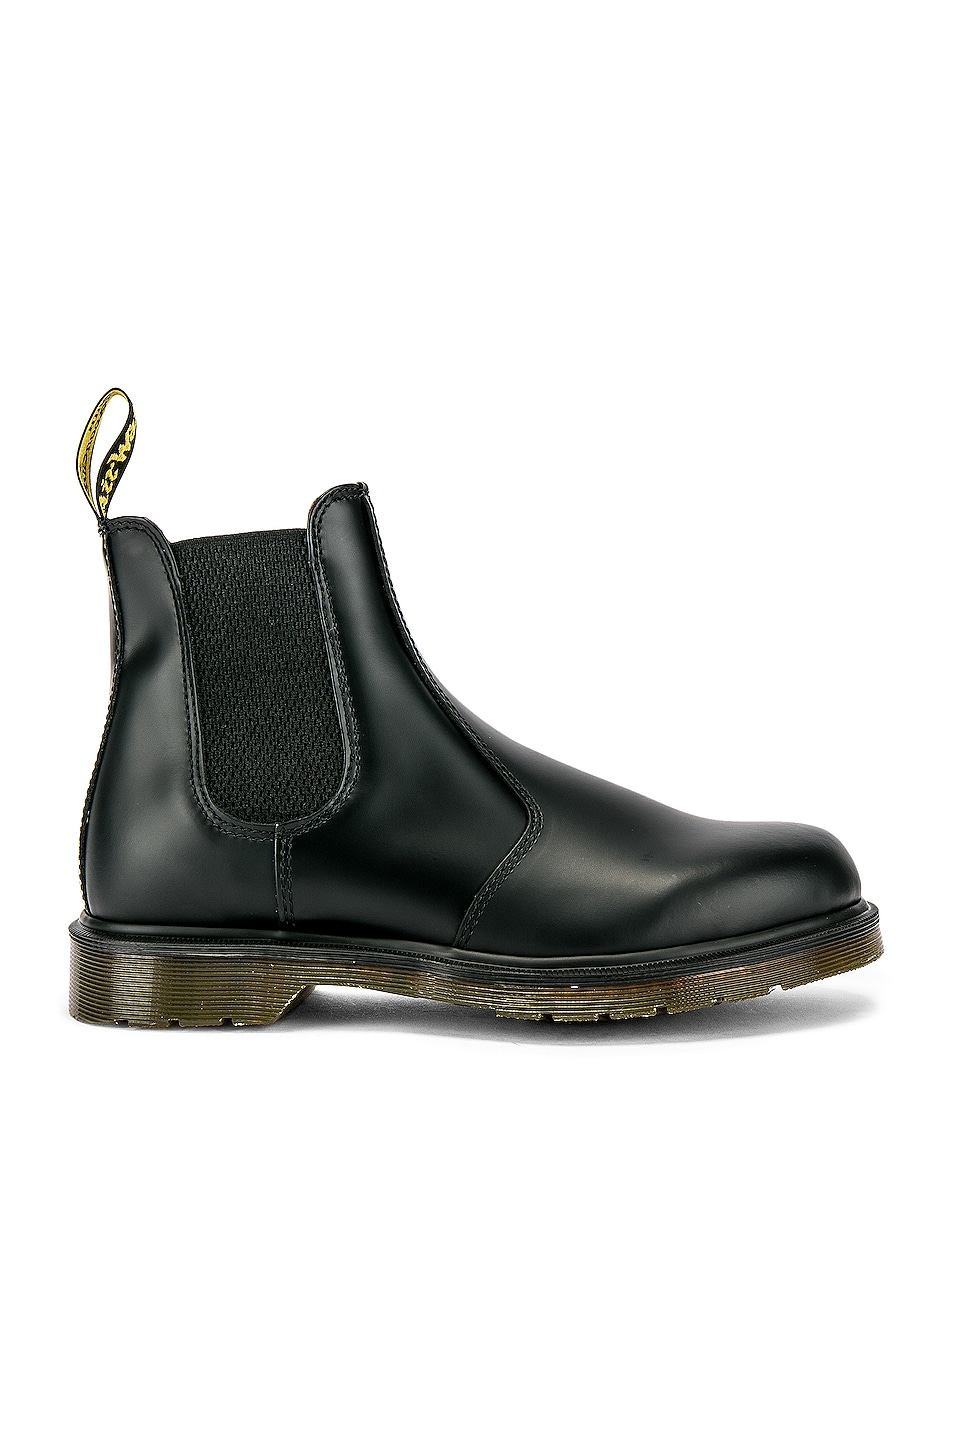 Image 1 of Dr. Martens 2976 Smooth Boot in Black